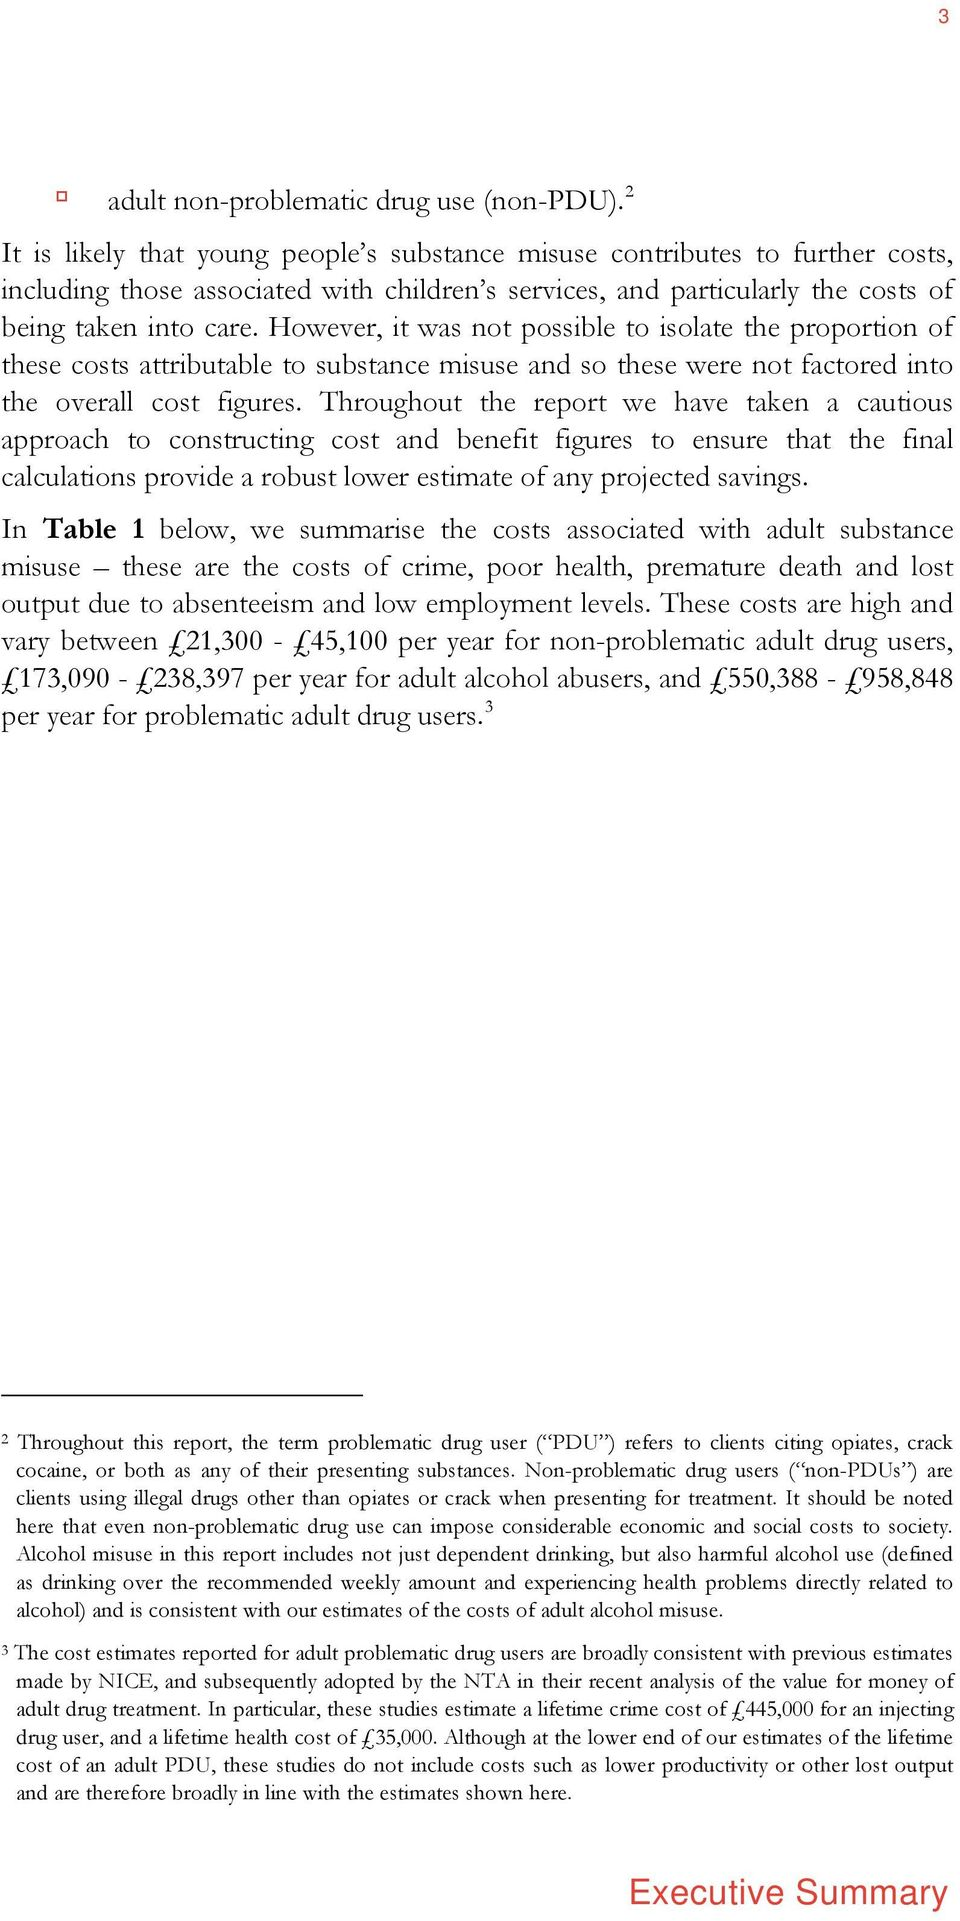 However, it was not possible to isolate the proportion of these costs attributable to substance misuse and so these were not factored into the overall cost figures.